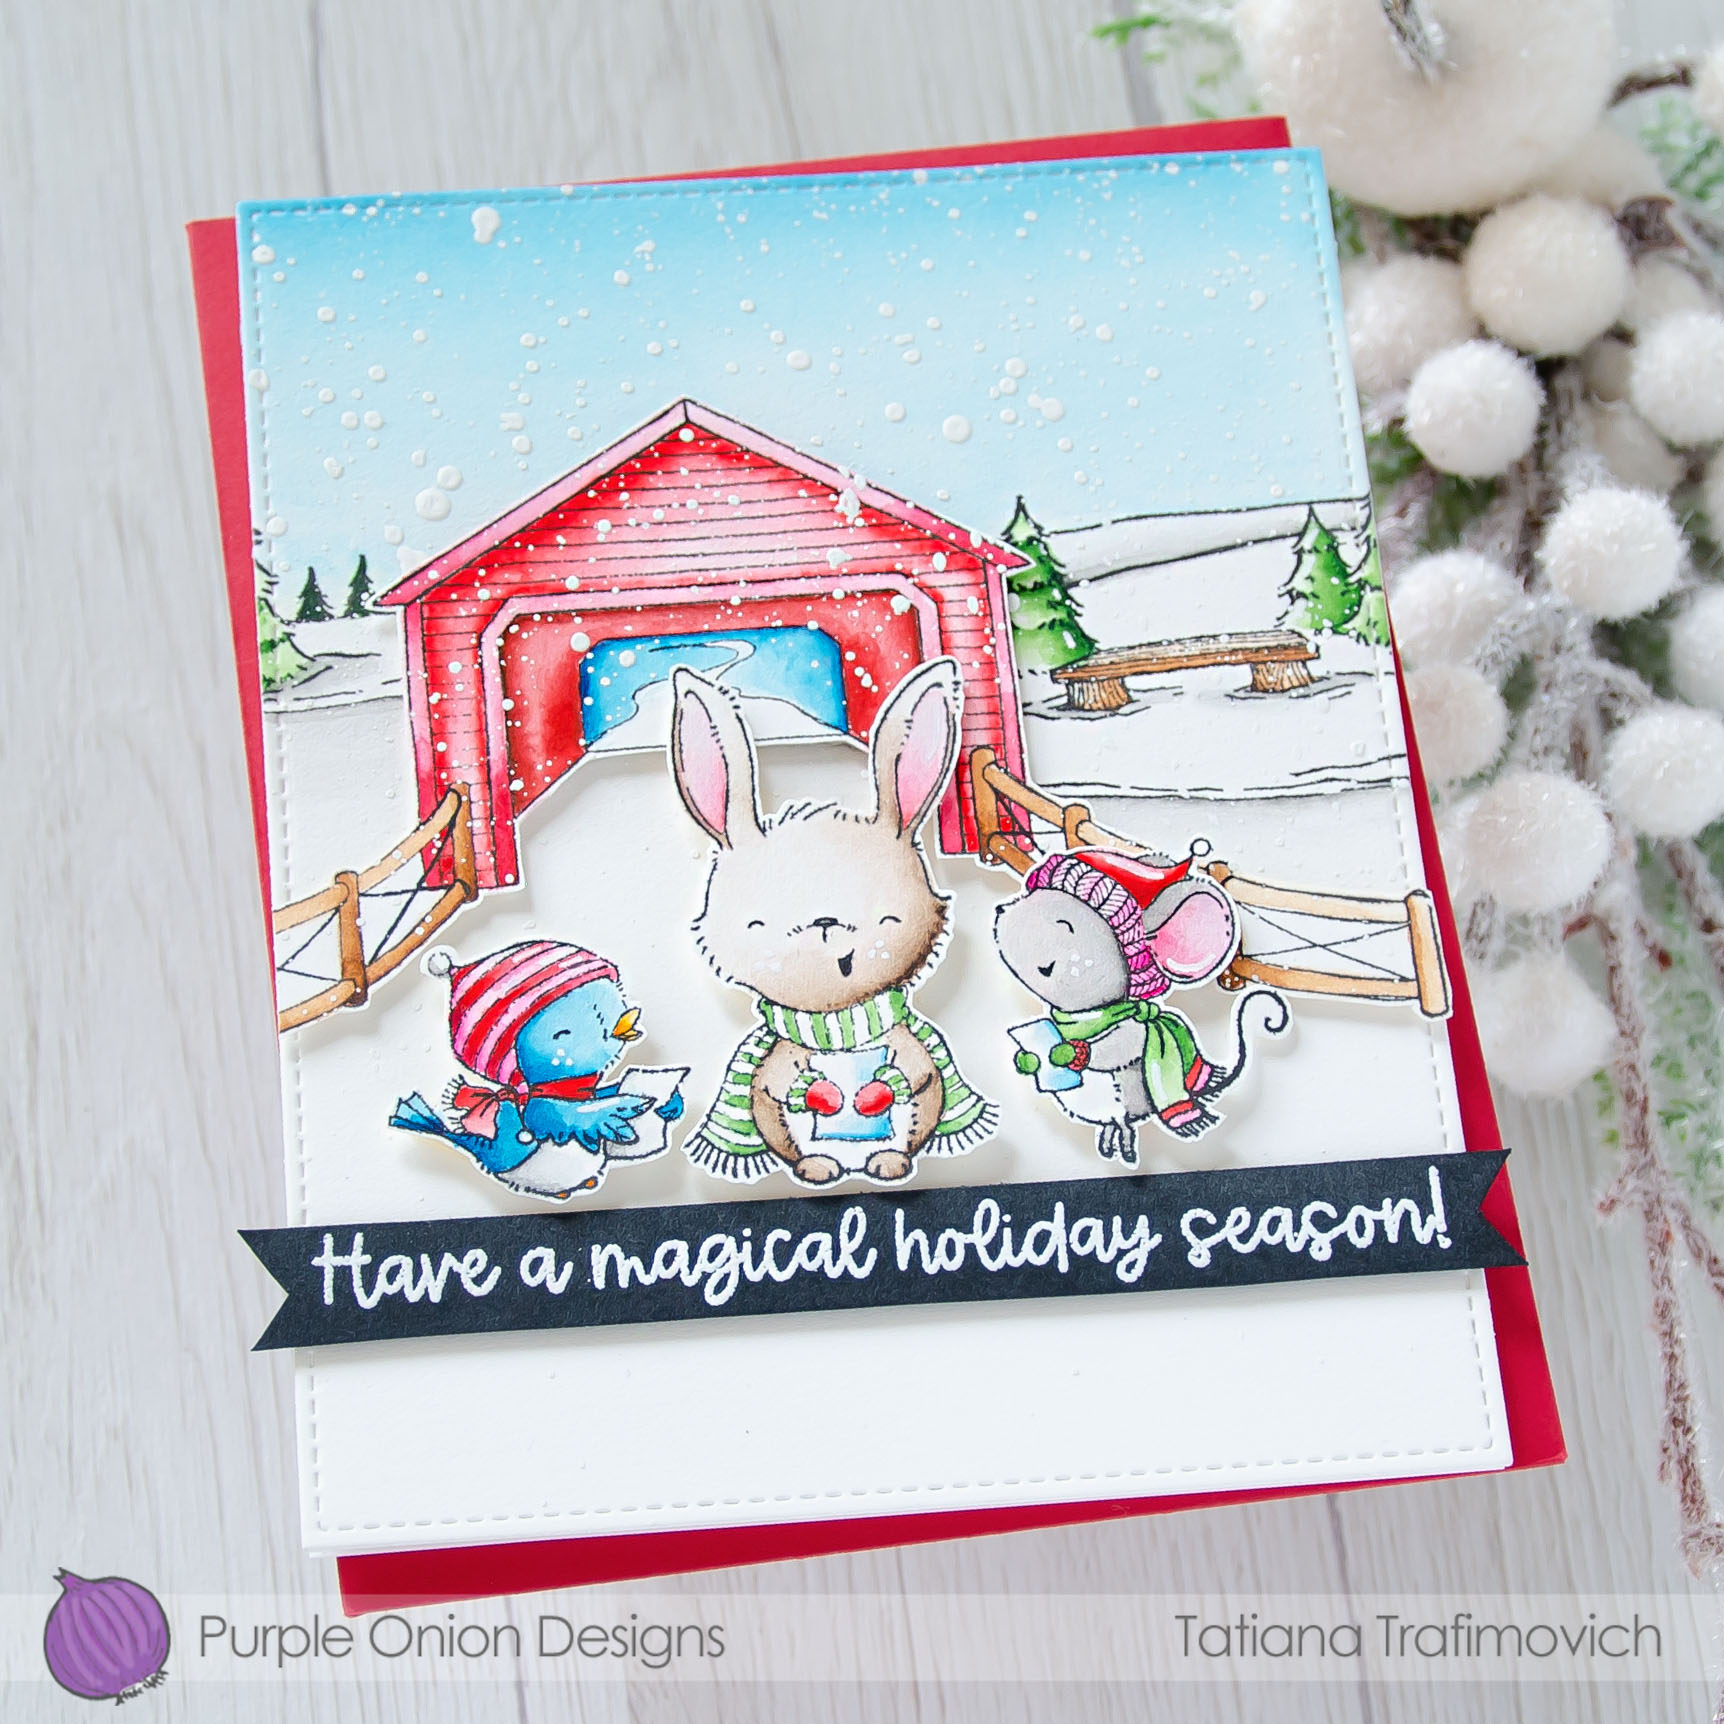 Have A Magical Holiday Season #handmade card by Tatiana Trafimovich #tatianacraftandart - stamps by Purple Onion Designs